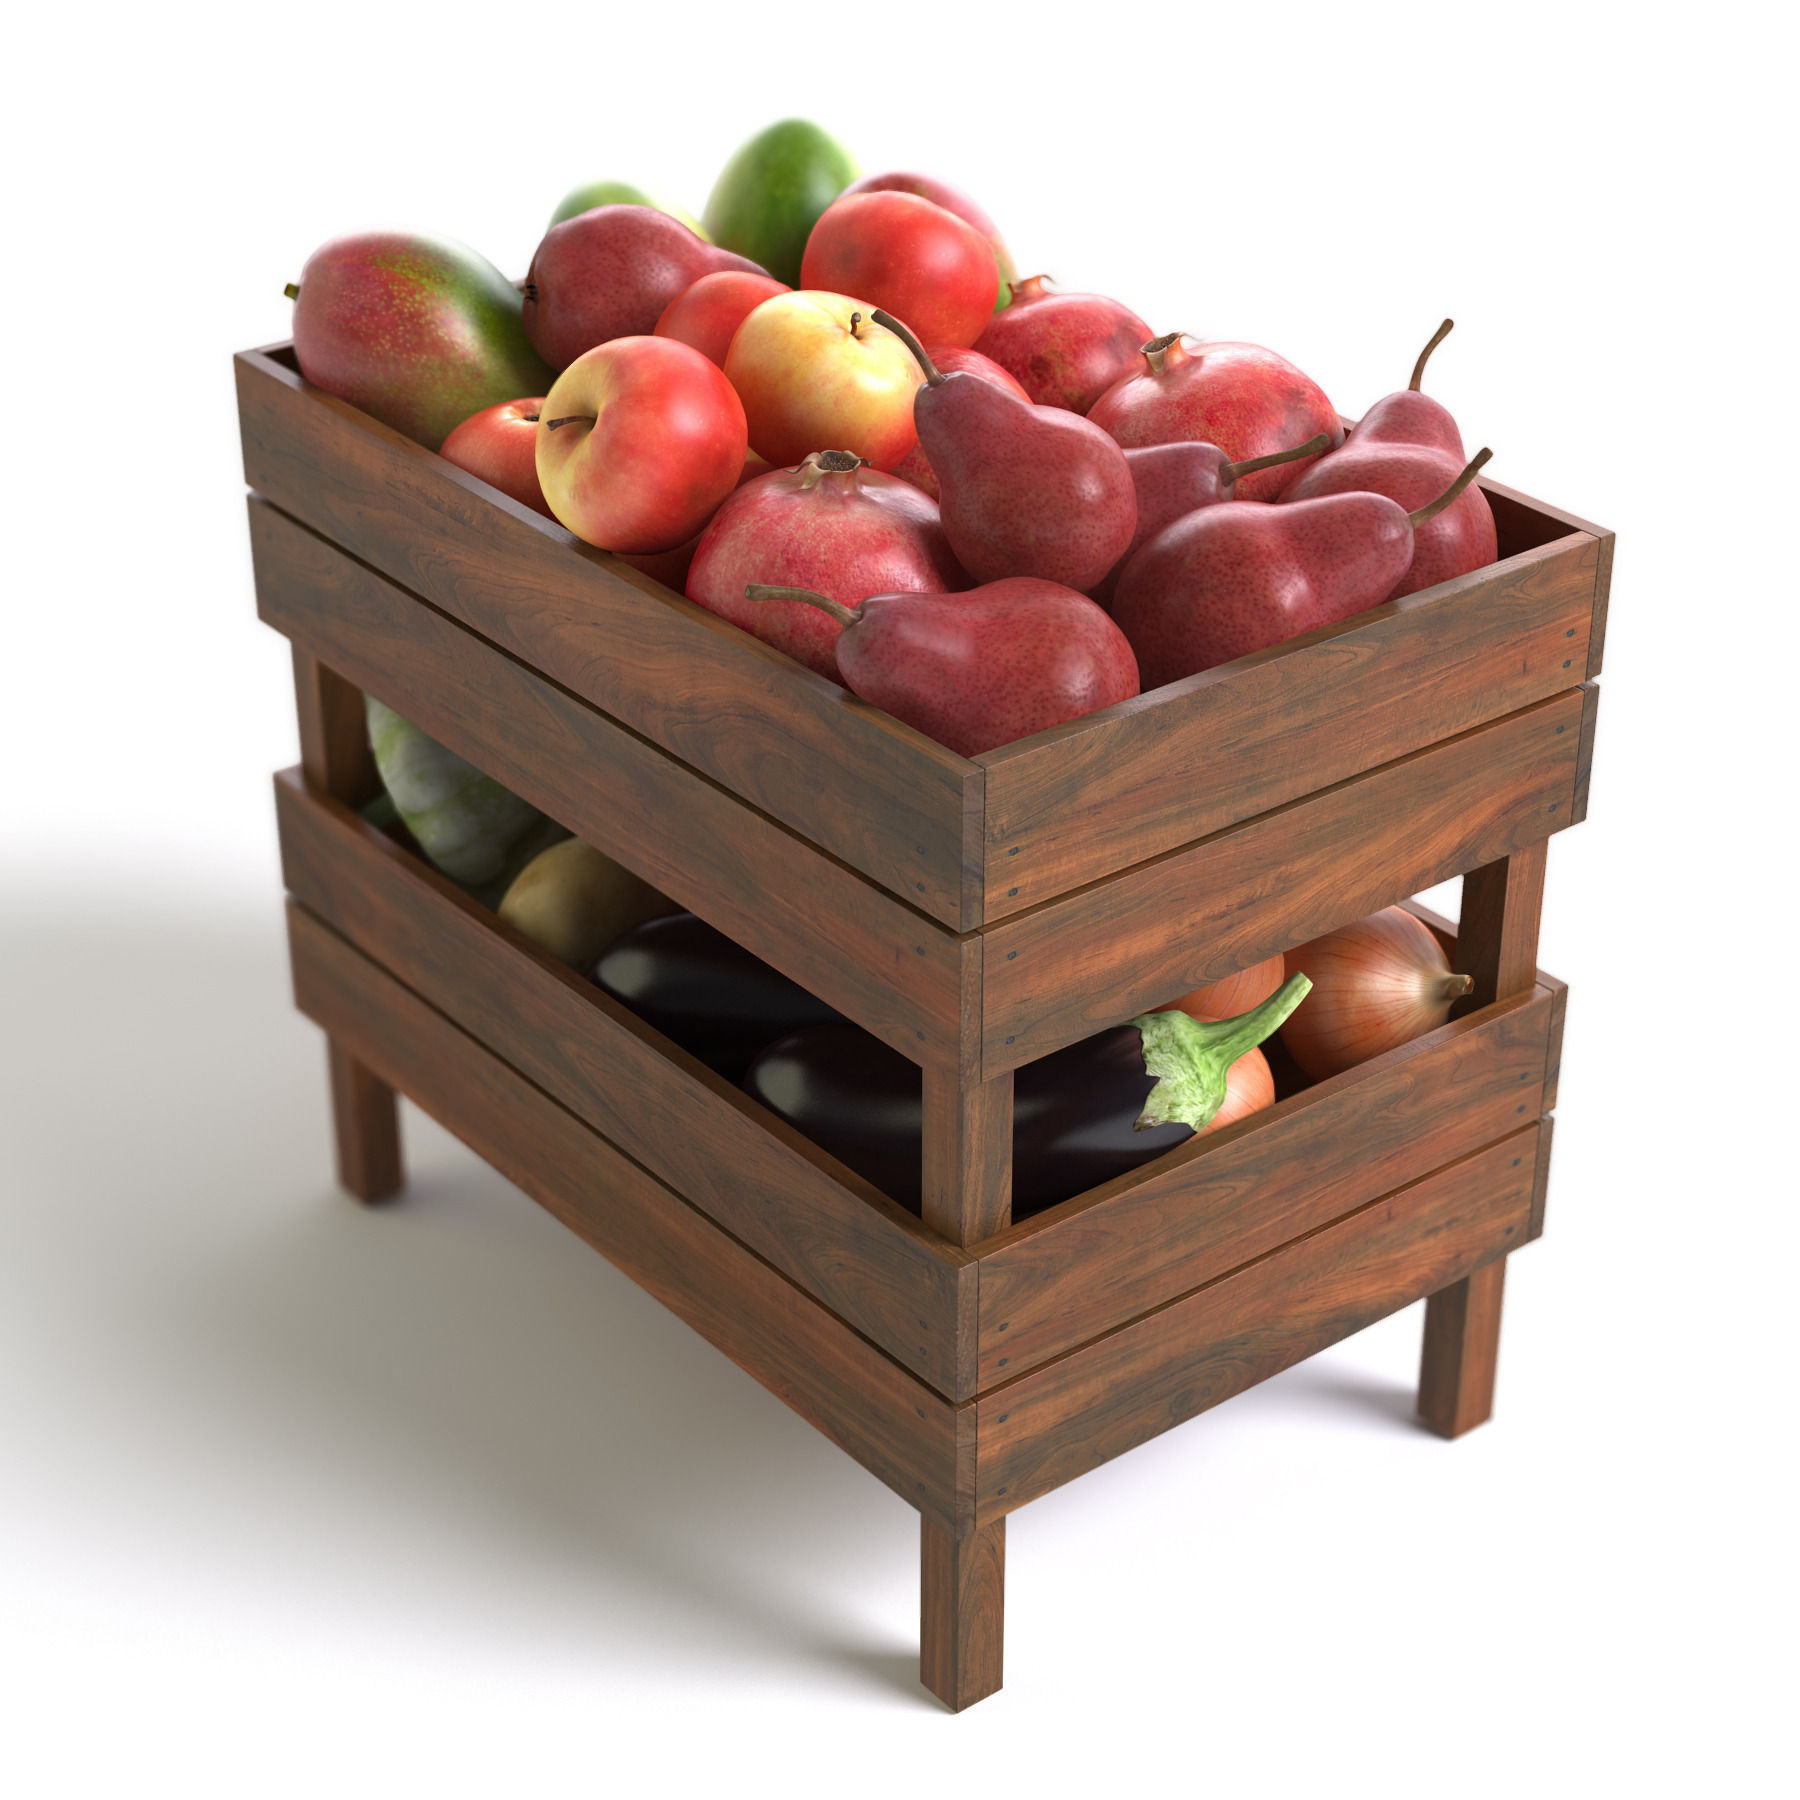 Crates with fruit and vegetables 3d model max obj 3ds fbx for Wooden fruit crates